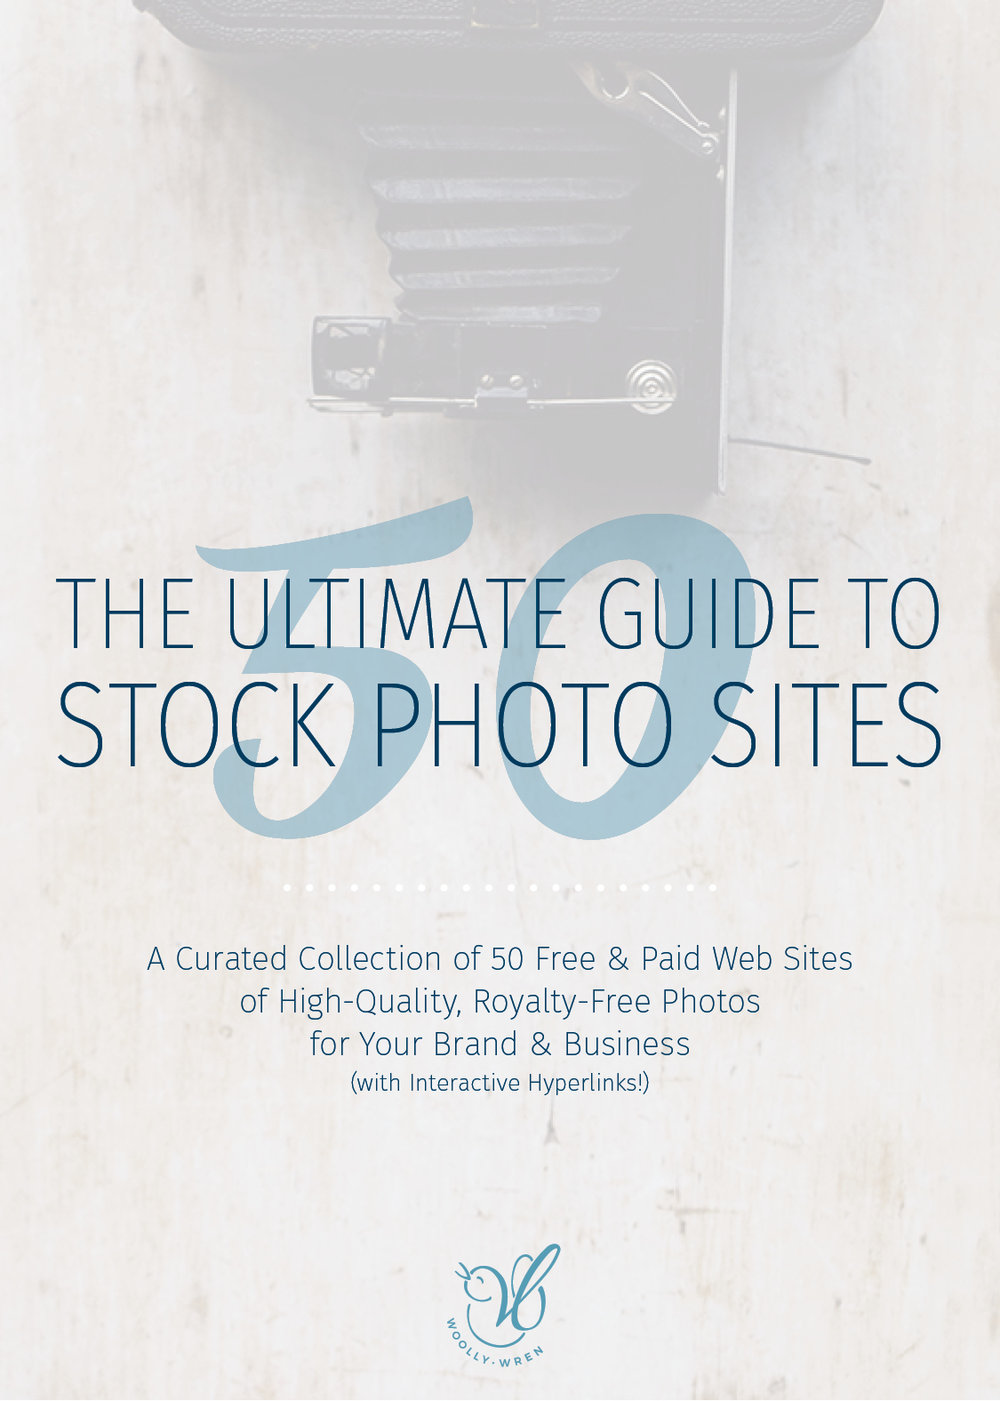 The Ultimate Guide to 50 Stock Photo Sites, high-quality, royalty-free, branding